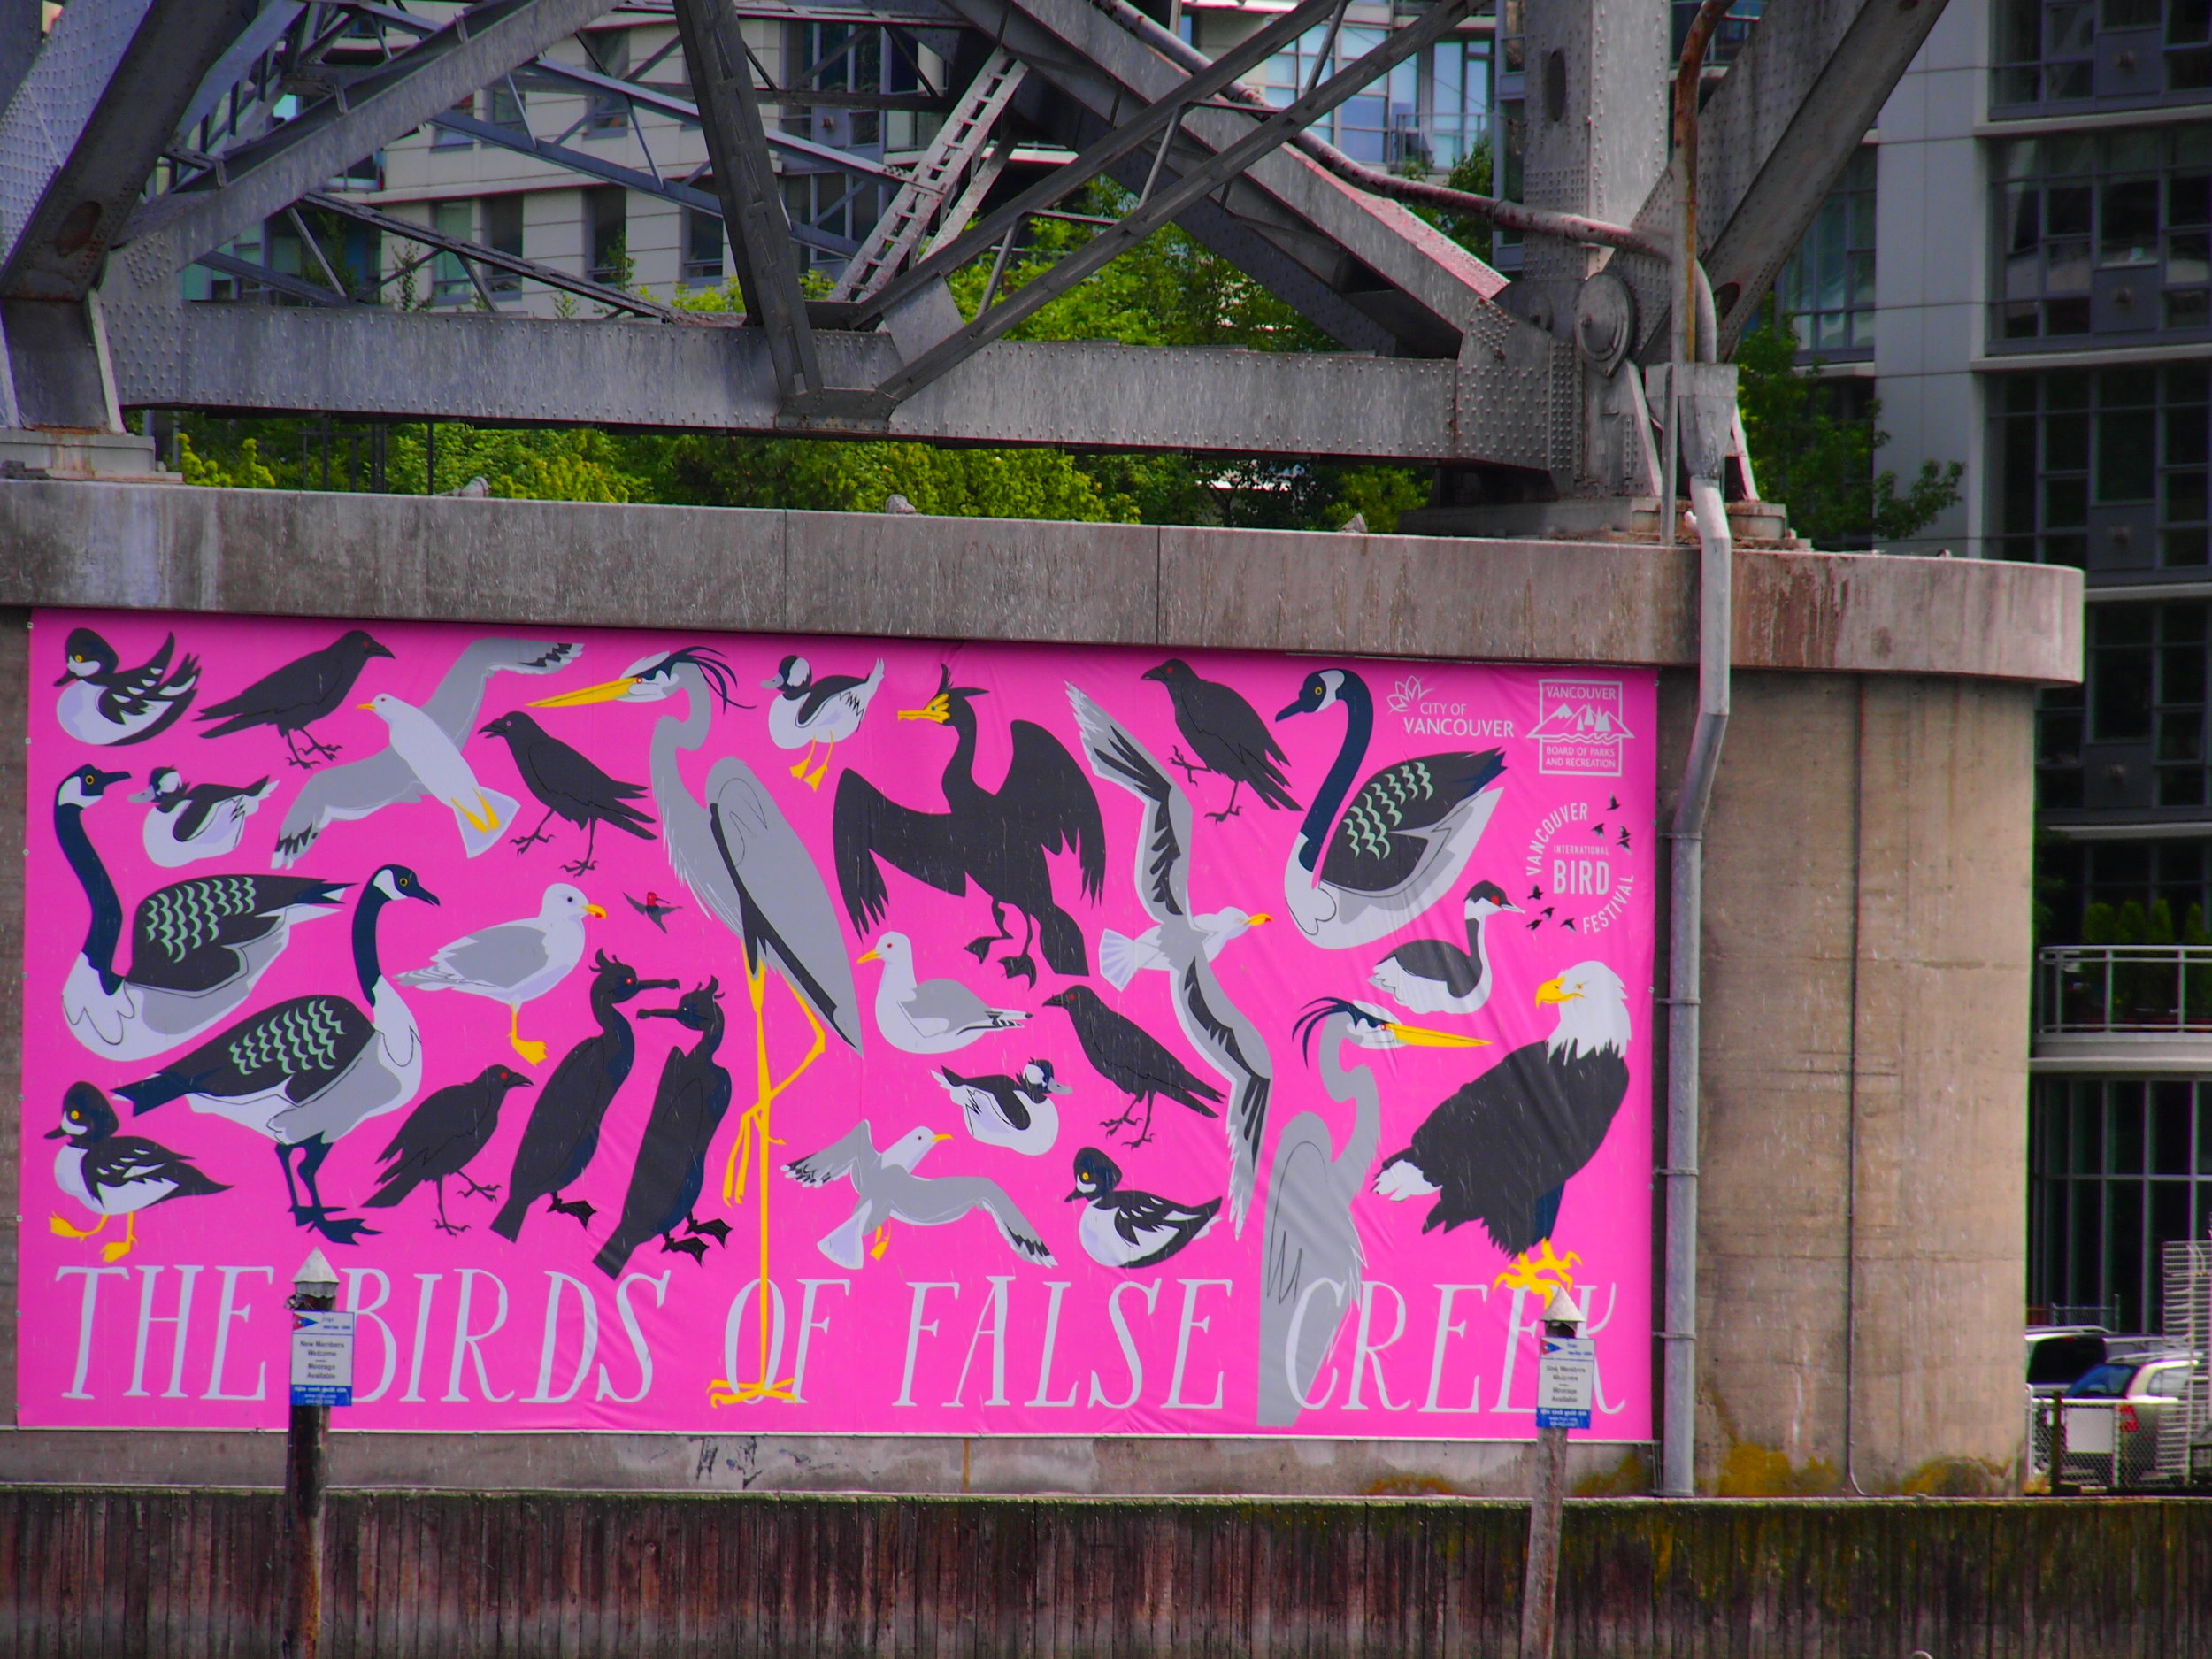 Mural on False Creek